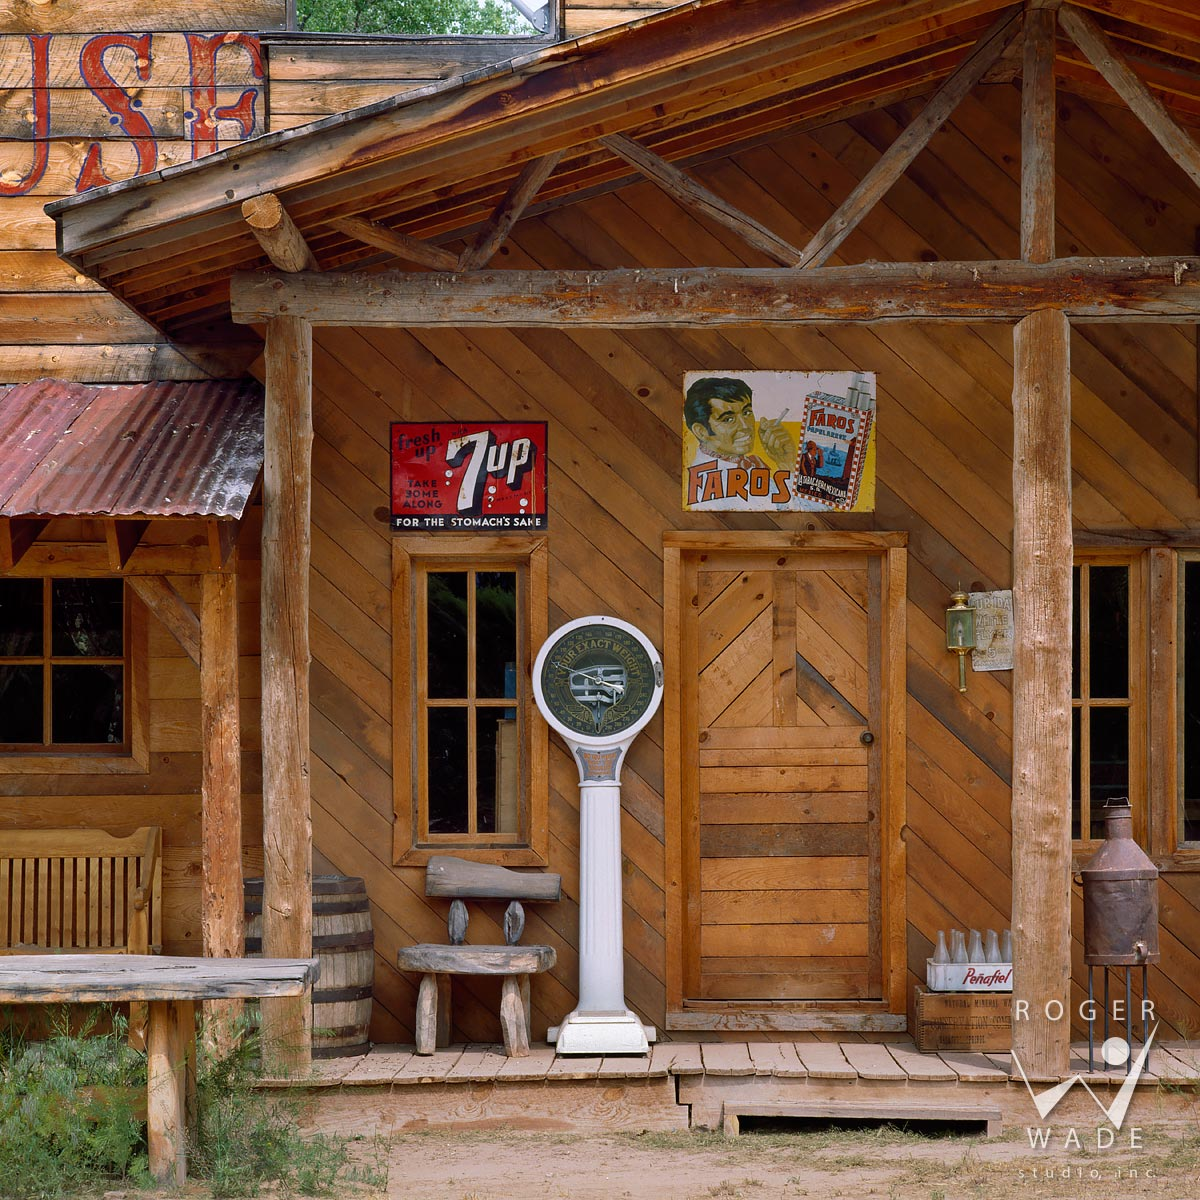 roger wade studio rustic architectural photography of general store detail, juan gabriel ranch, santa fe, new mexico, photographed for cowboys & indians magazine